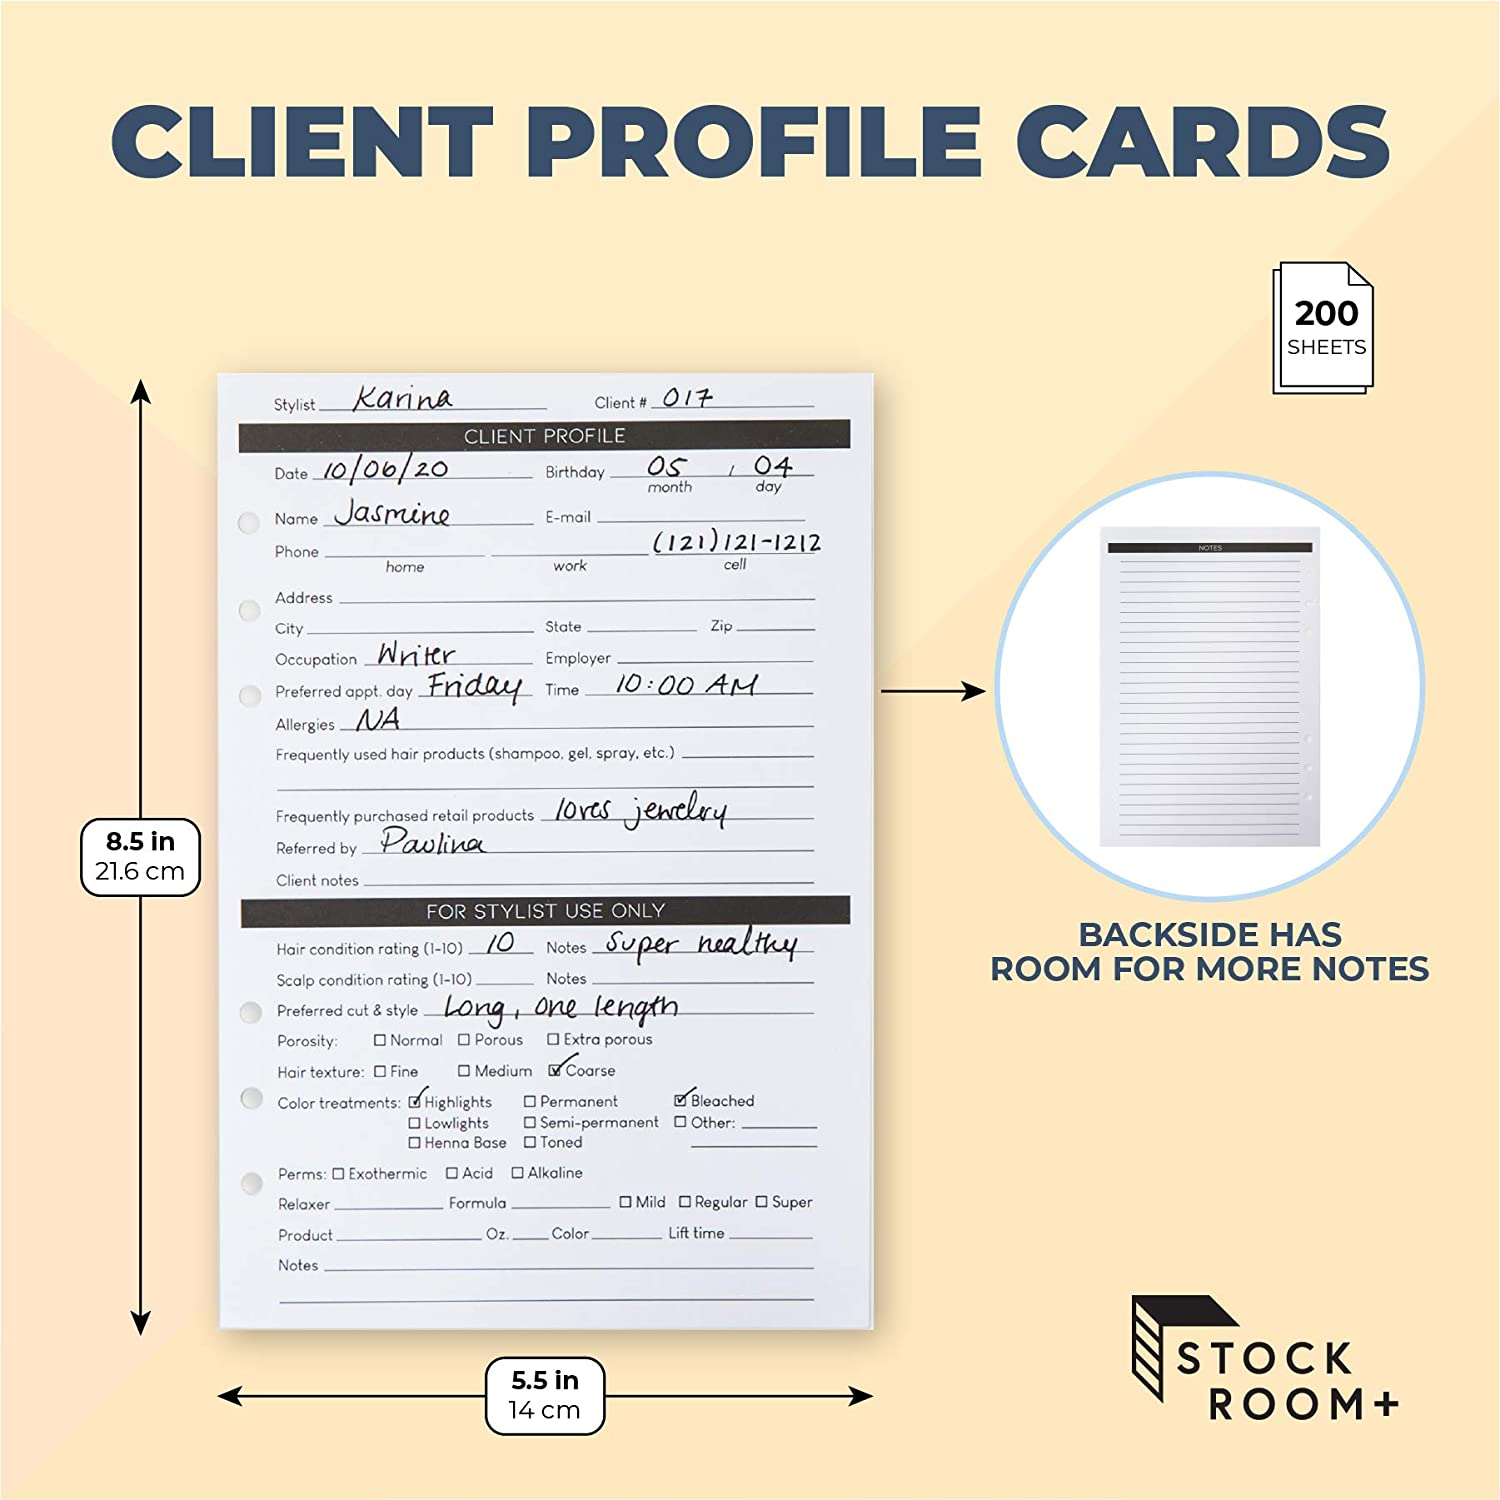 Business Salons 8.5 x 5.5 in, White, 200 Pack Client Profile Cards for Stylists